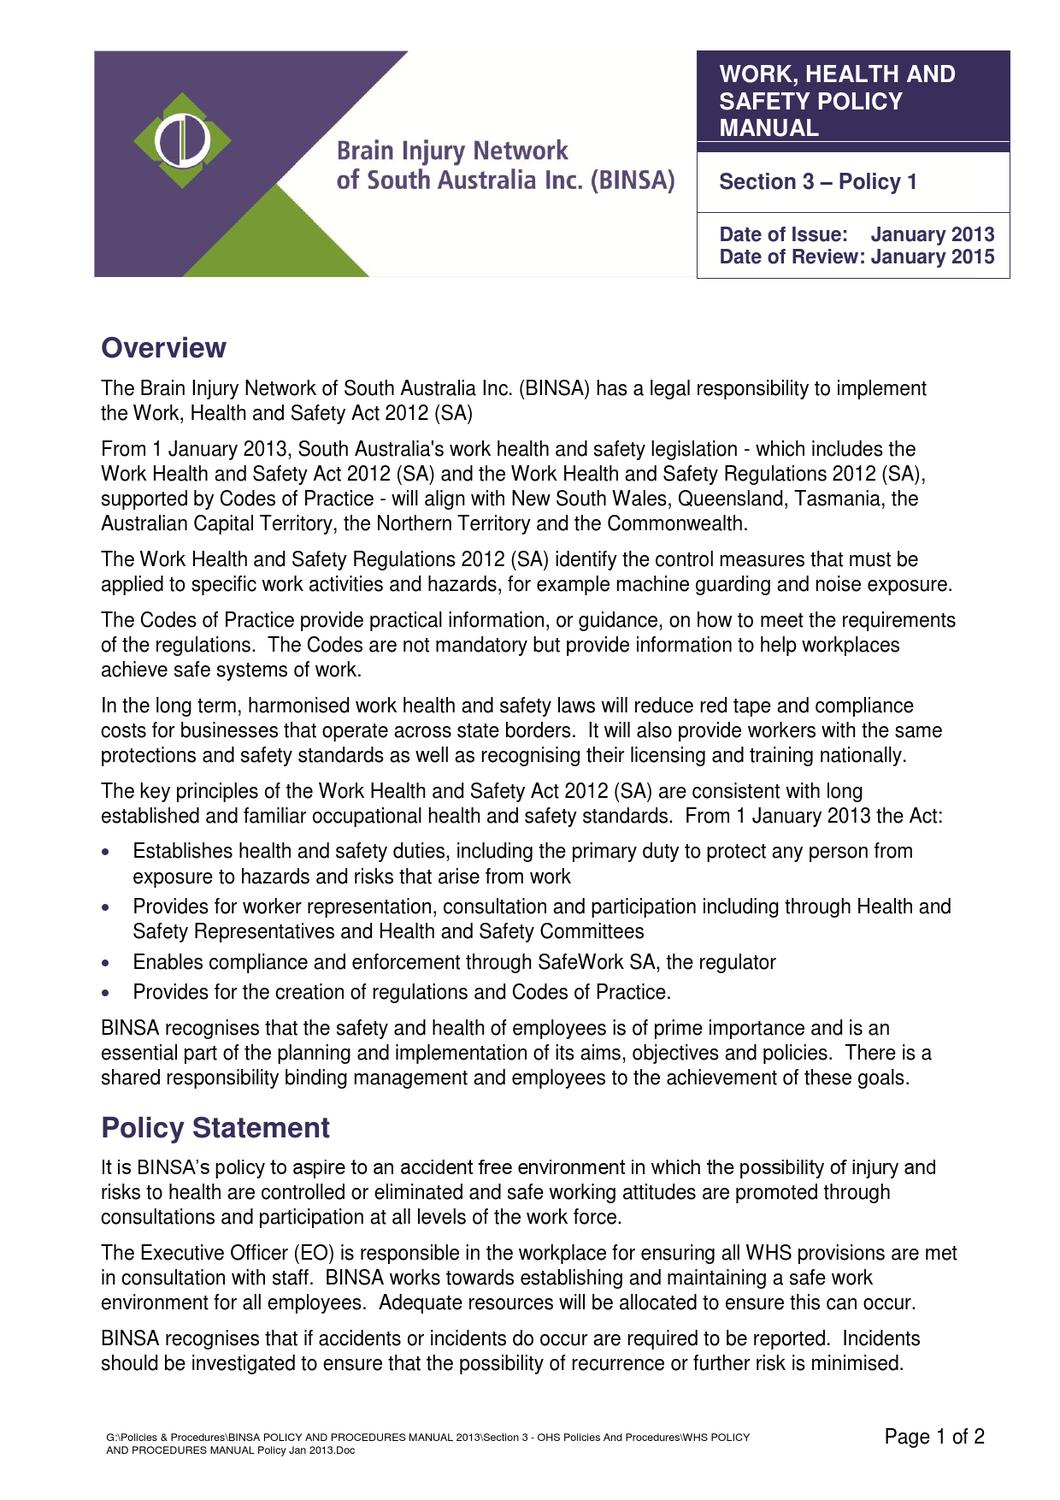 whs policy by brain injury network of south australia inc issuu rh issuu com work health and safety procedure manual cargill's environment health and safety policy and corporate procedure manual